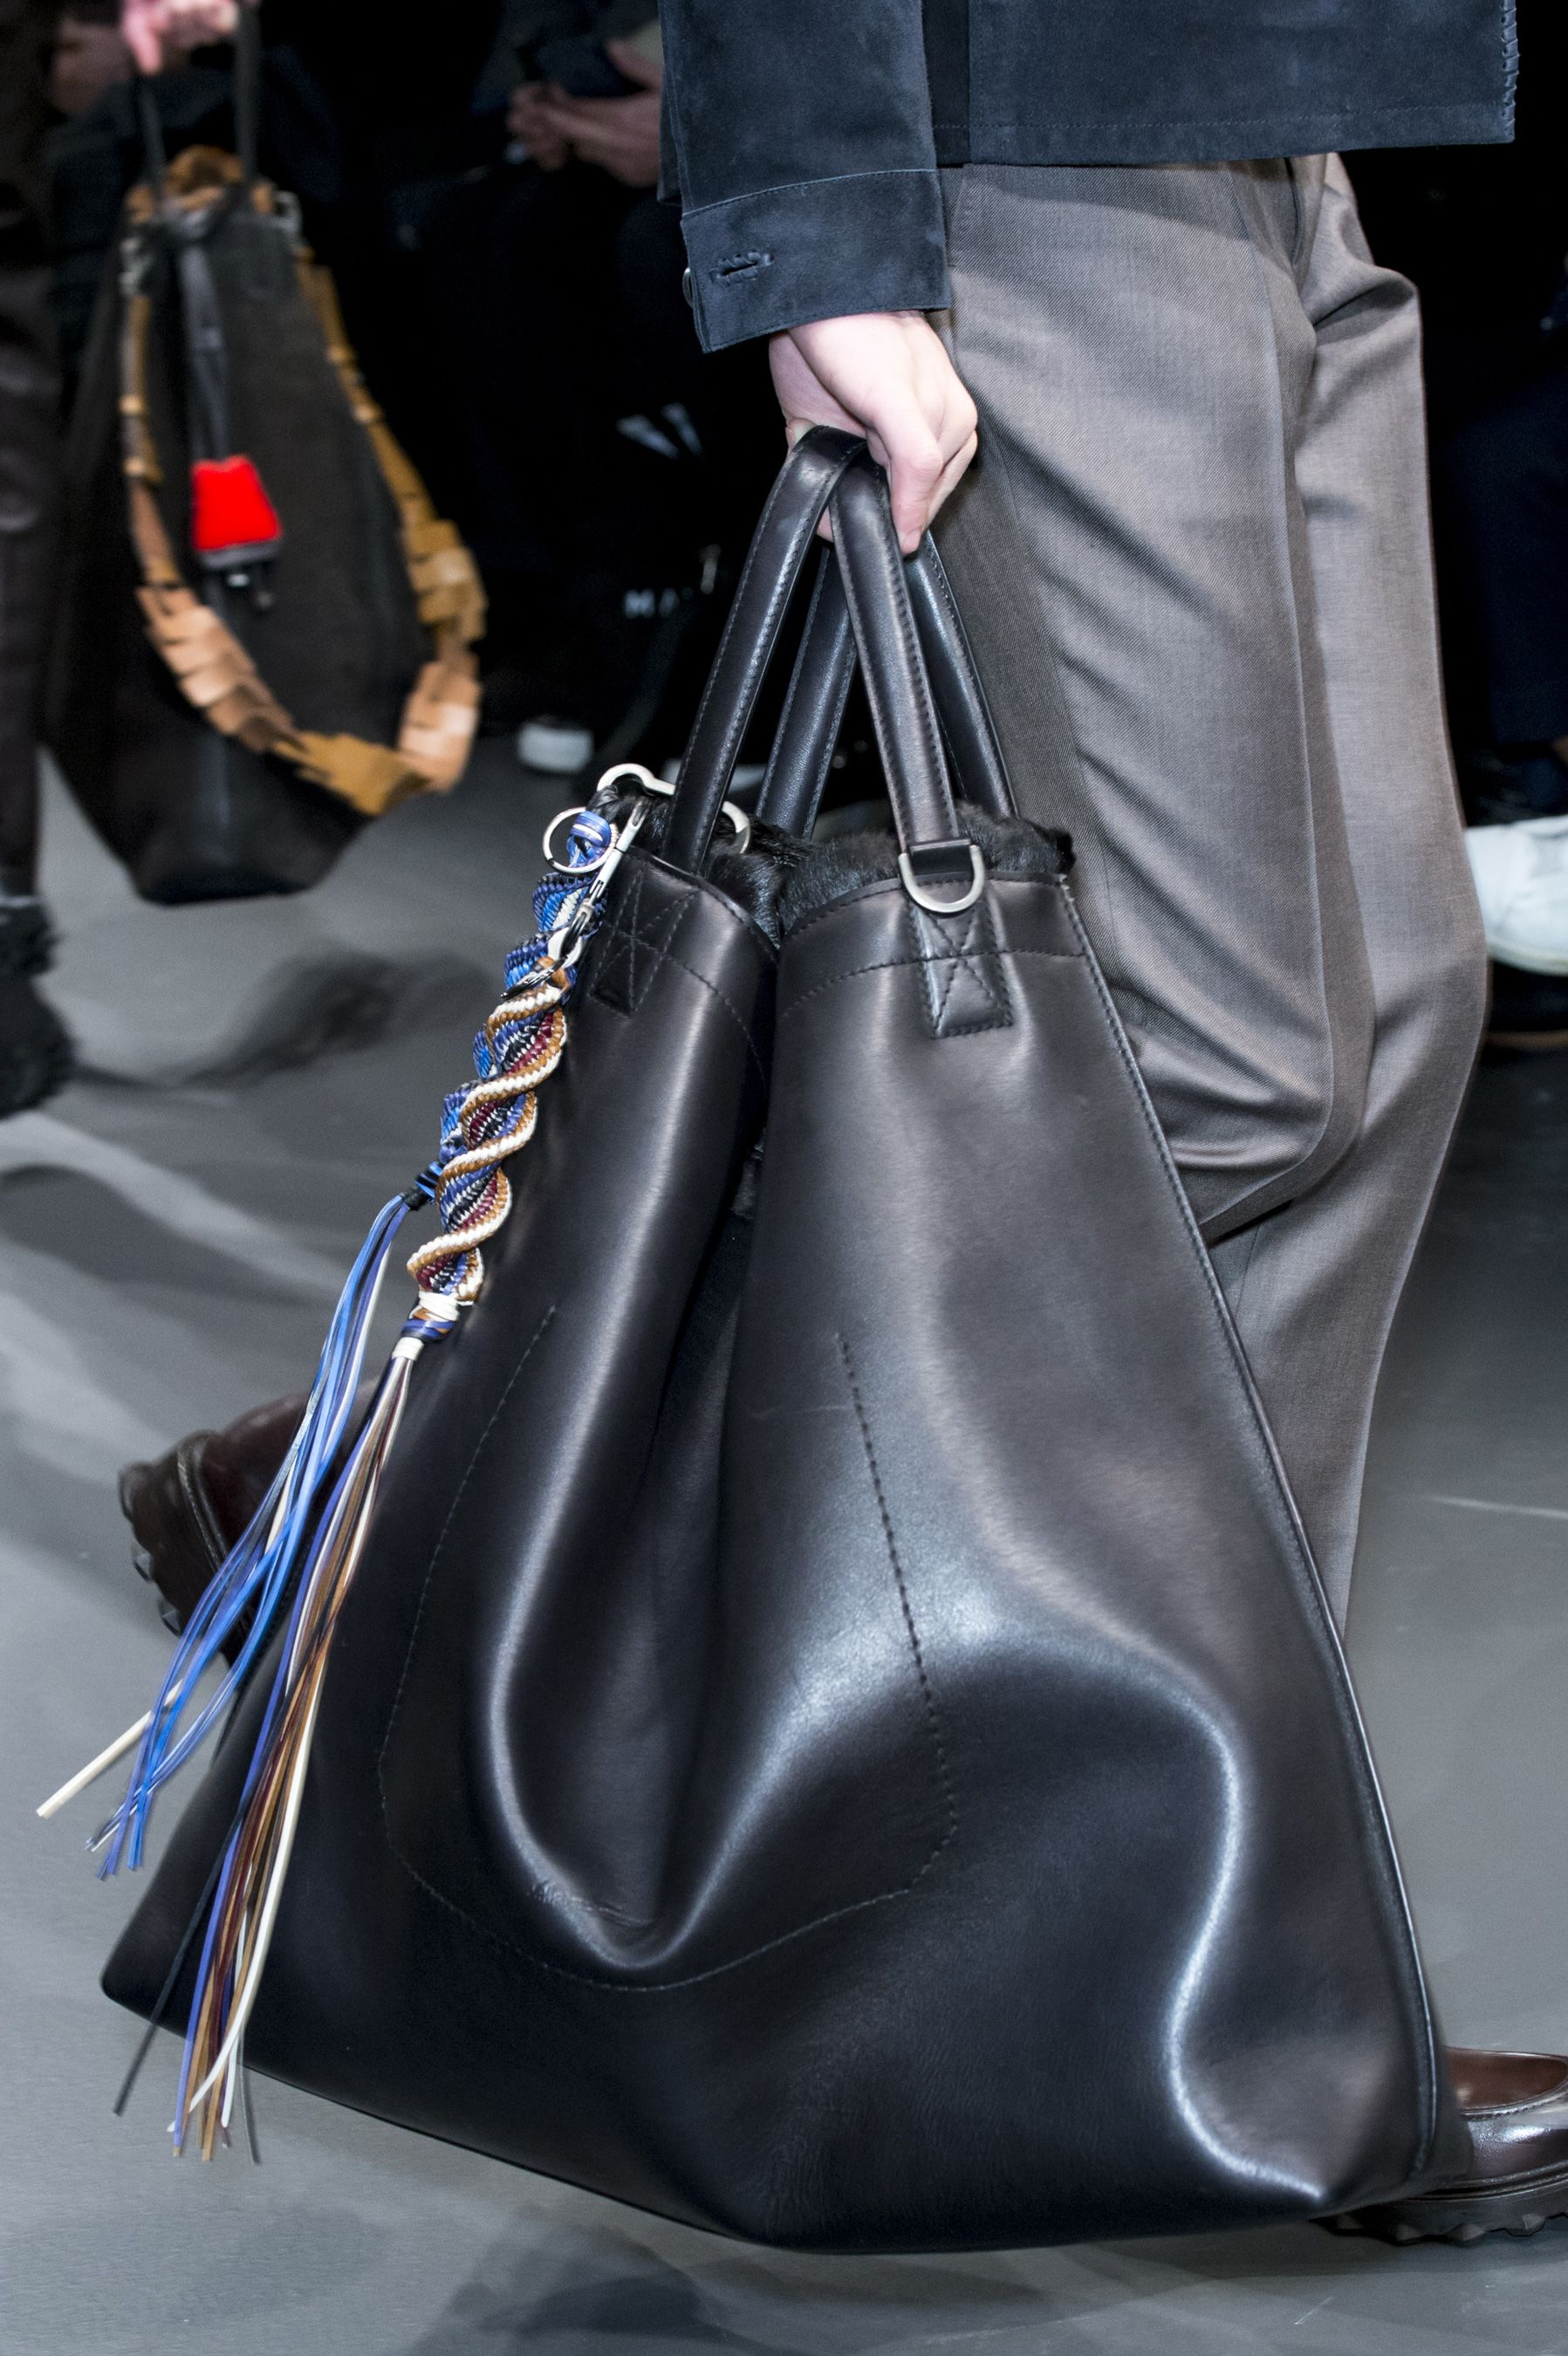 Salvatore Ferragamo Fall 2017 Men S Details Handbags For Leather Bags Purses